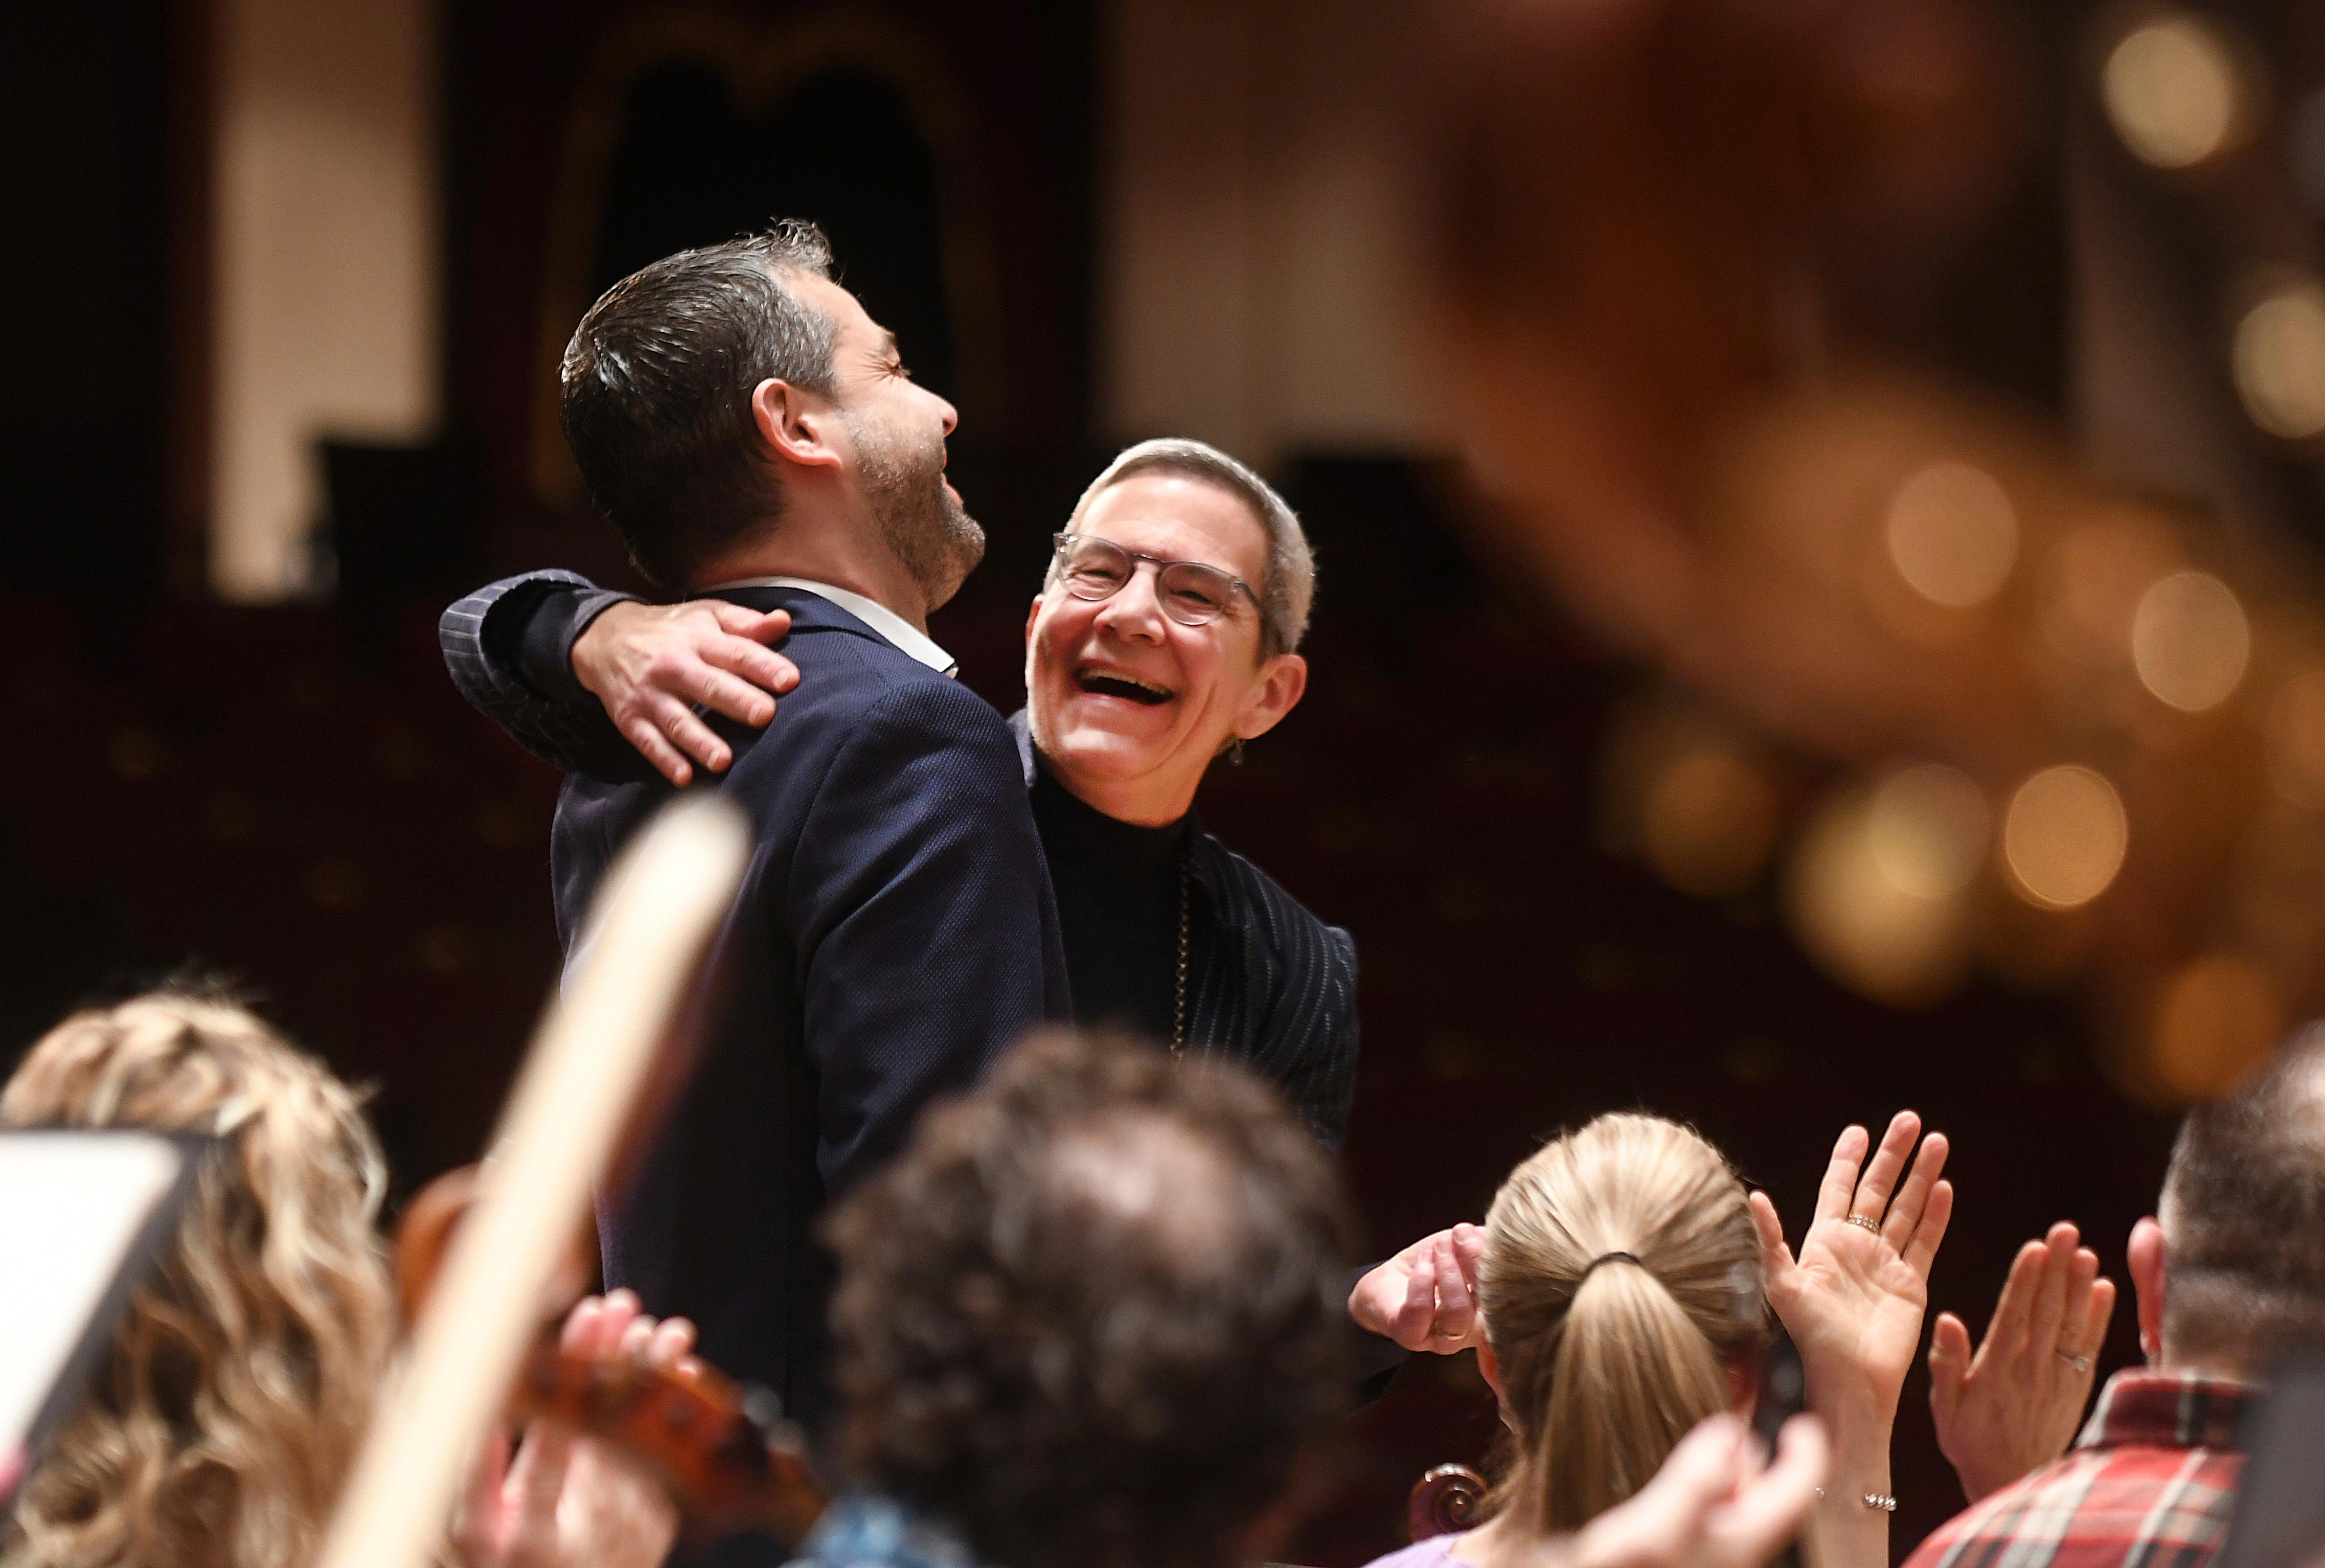 Italian conductor Jader Bignamini, center left, was named The Detroit Symphony Orchestra's new music director, and is hugged by DSO president and CEO Anne Parsons during a ceremony held at the Max M. Fisher Music Center in Detroit, on Wednesday, Jan. 22, 2020. (Max Ortiz/Detroit News via AP)